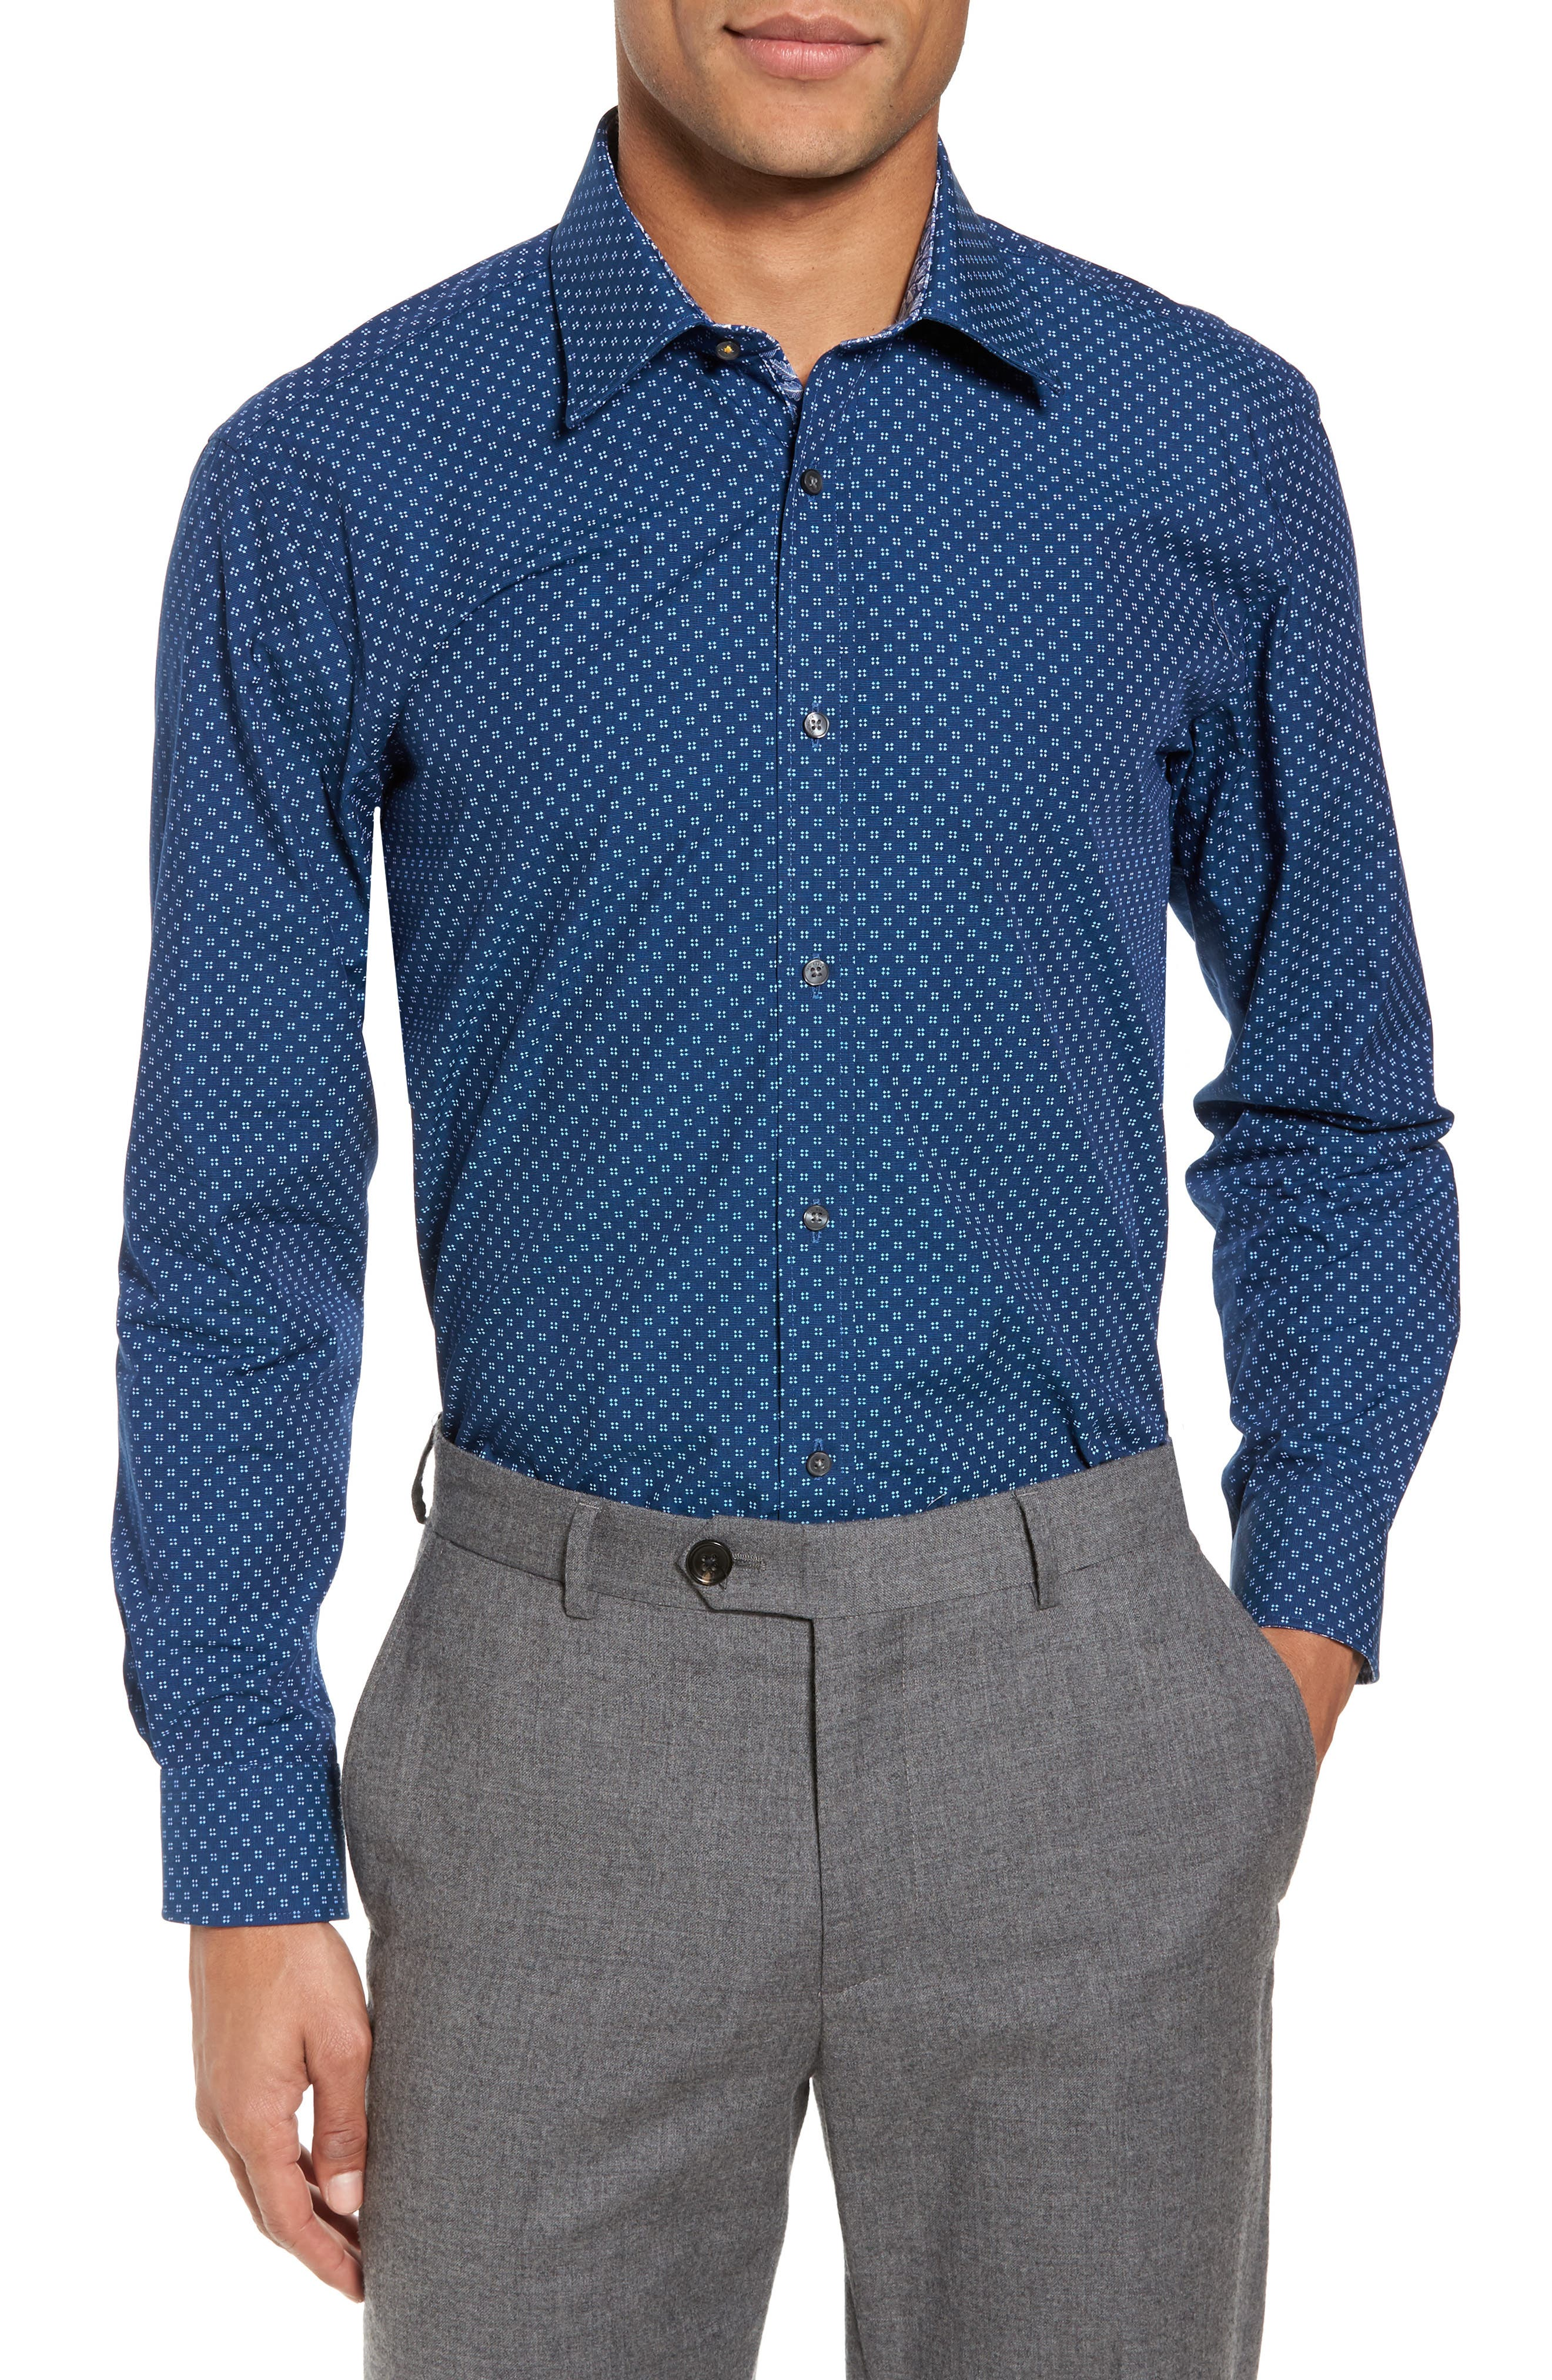 Alternate Image 2  - Ted Baker London Endurance Trim Fit Geo Print Dress Shirt